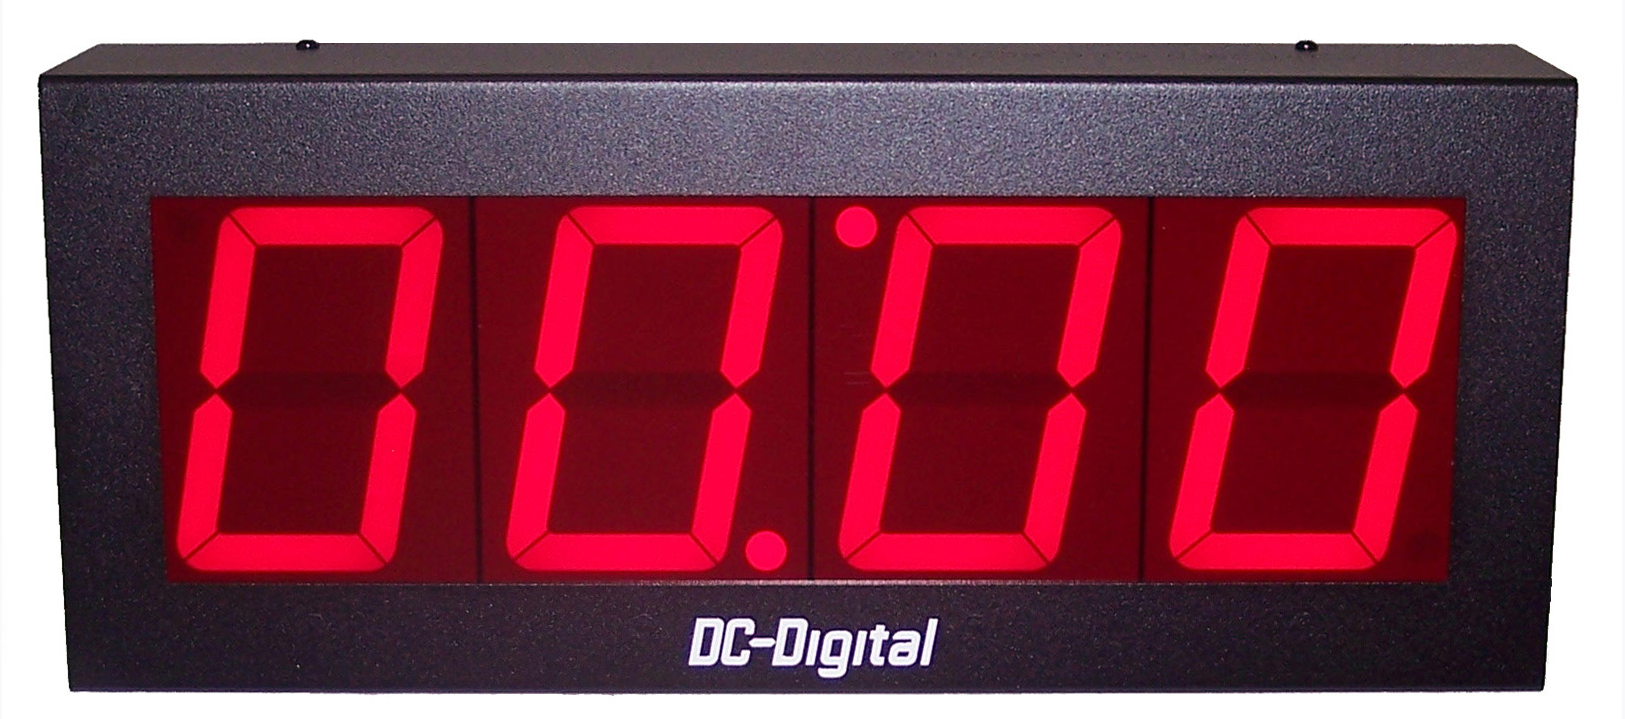 Static Number Display receives and displays only the numbers sent it through your network